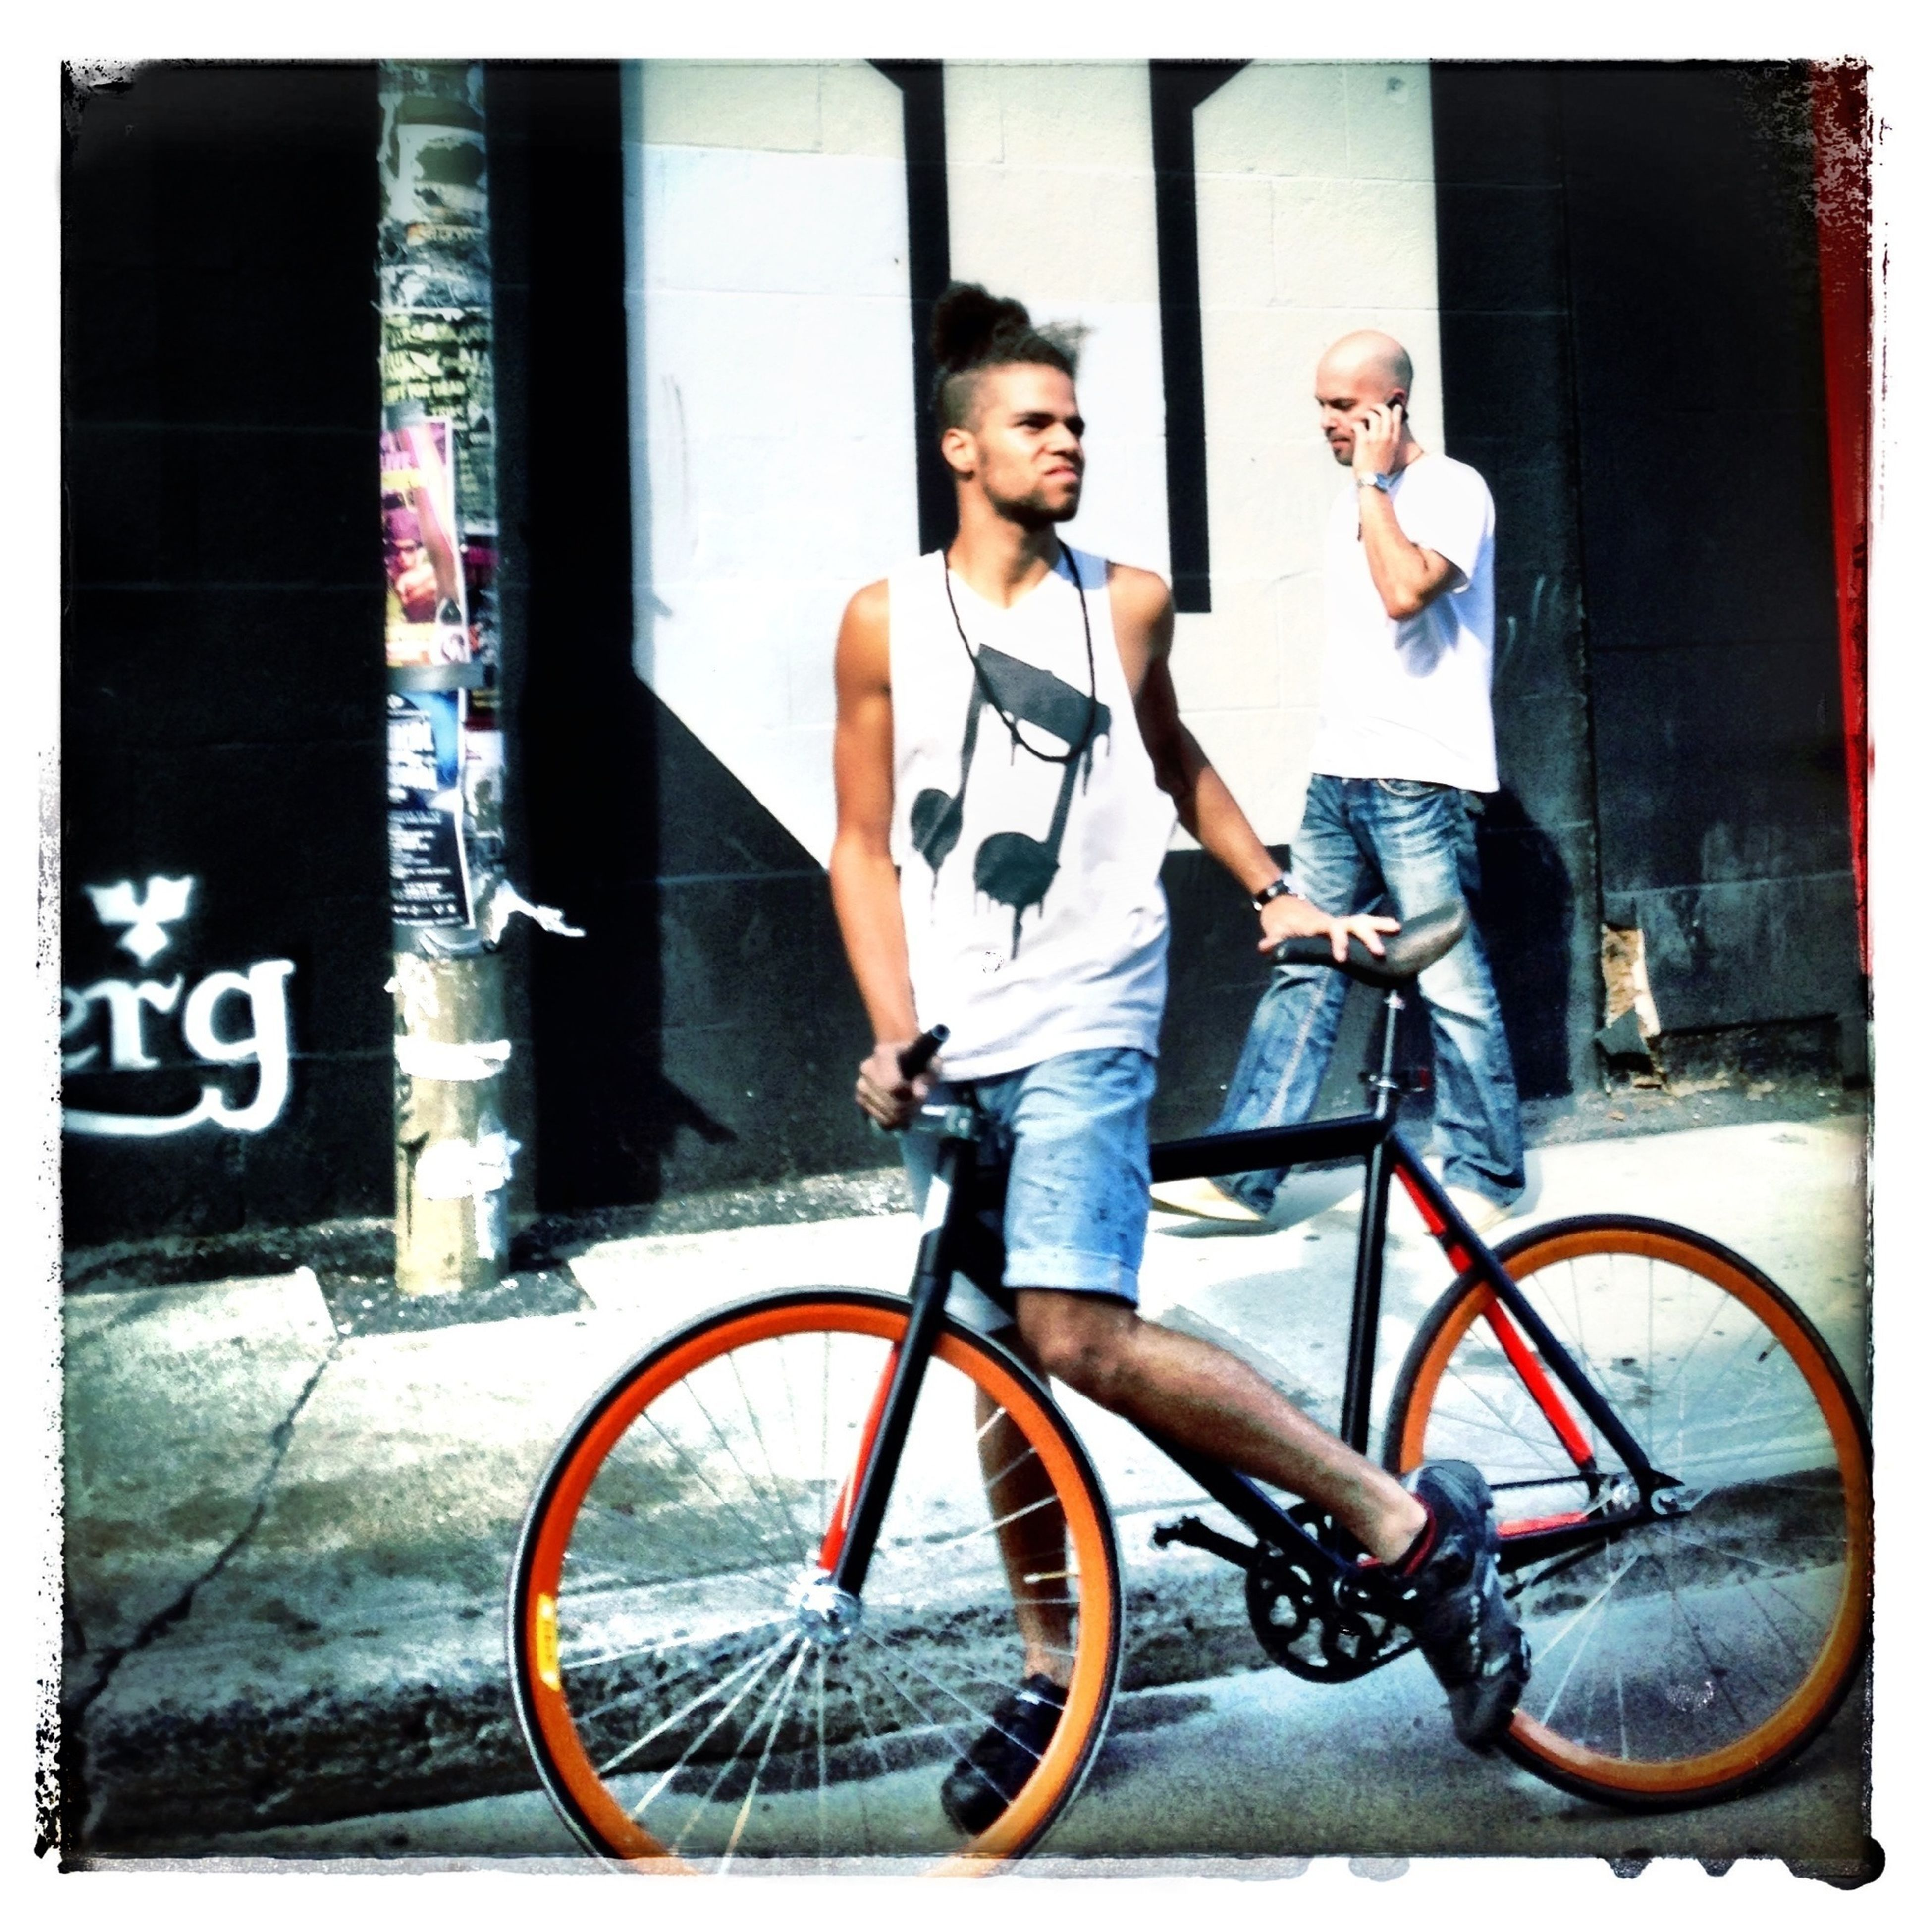 bicycle, lifestyles, full length, transportation, mode of transport, architecture, building exterior, built structure, land vehicle, casual clothing, leisure activity, wall - building feature, leaning, person, side view, auto post production filter, transfer print, street